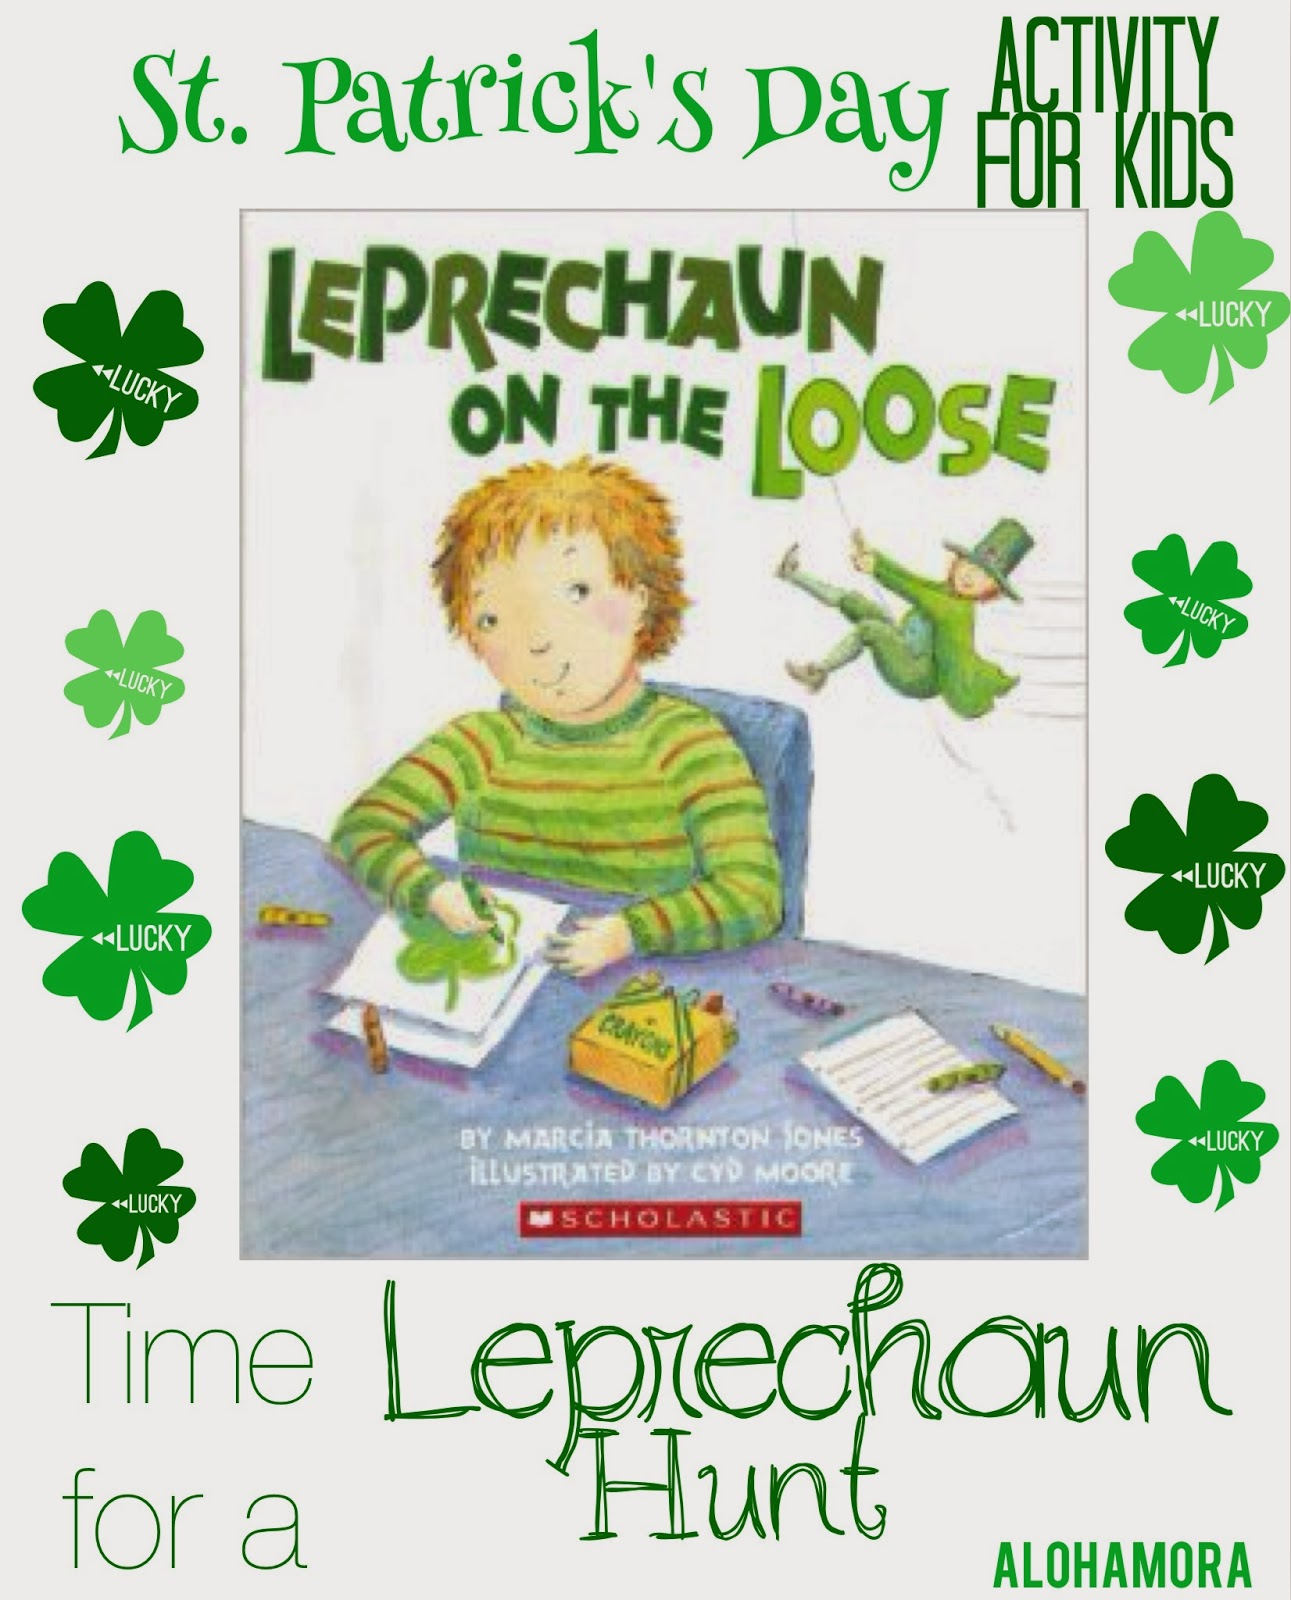 St. Patrick's Day lesson/fun activity for toddlers, preschoolers, and kindergartners.   Leprechaun on the loose... time for a leprechaun scavenger hunt.  Alohamora Open a Book http://alohamoraopenabook.blogspot.com/